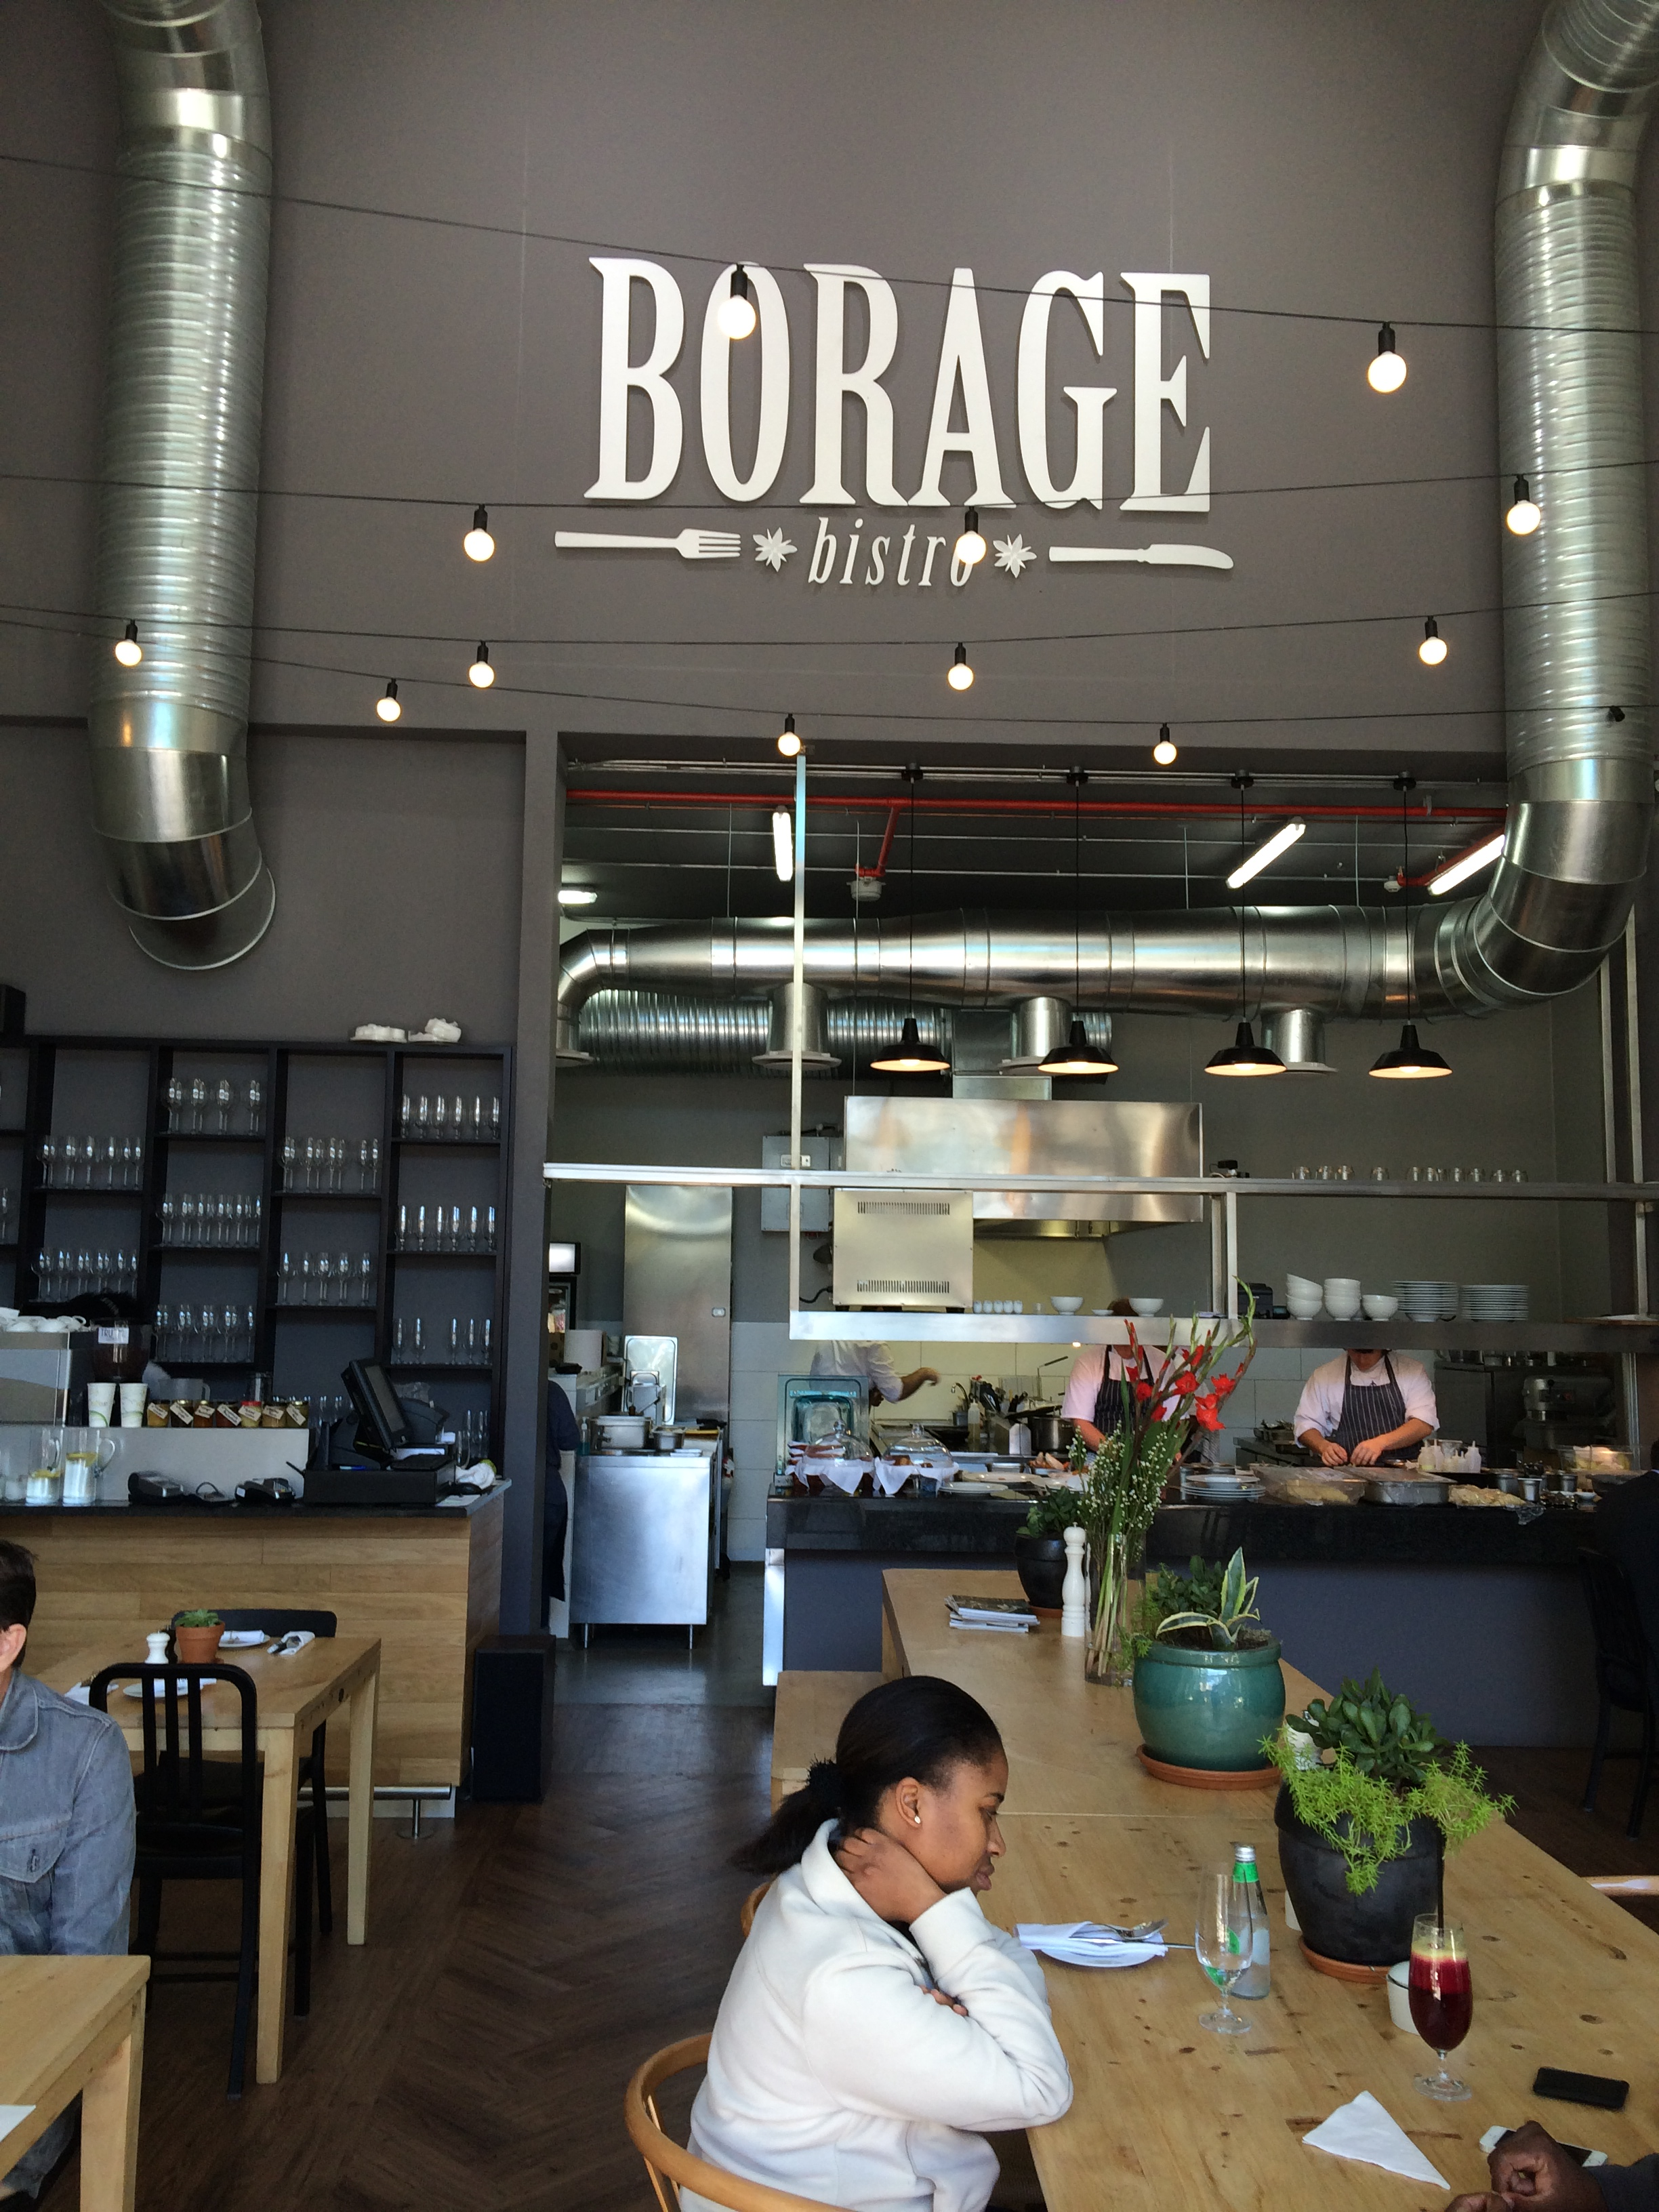 restaurant review borage bistro offers refreshing german fusion cuisine and service. Black Bedroom Furniture Sets. Home Design Ideas